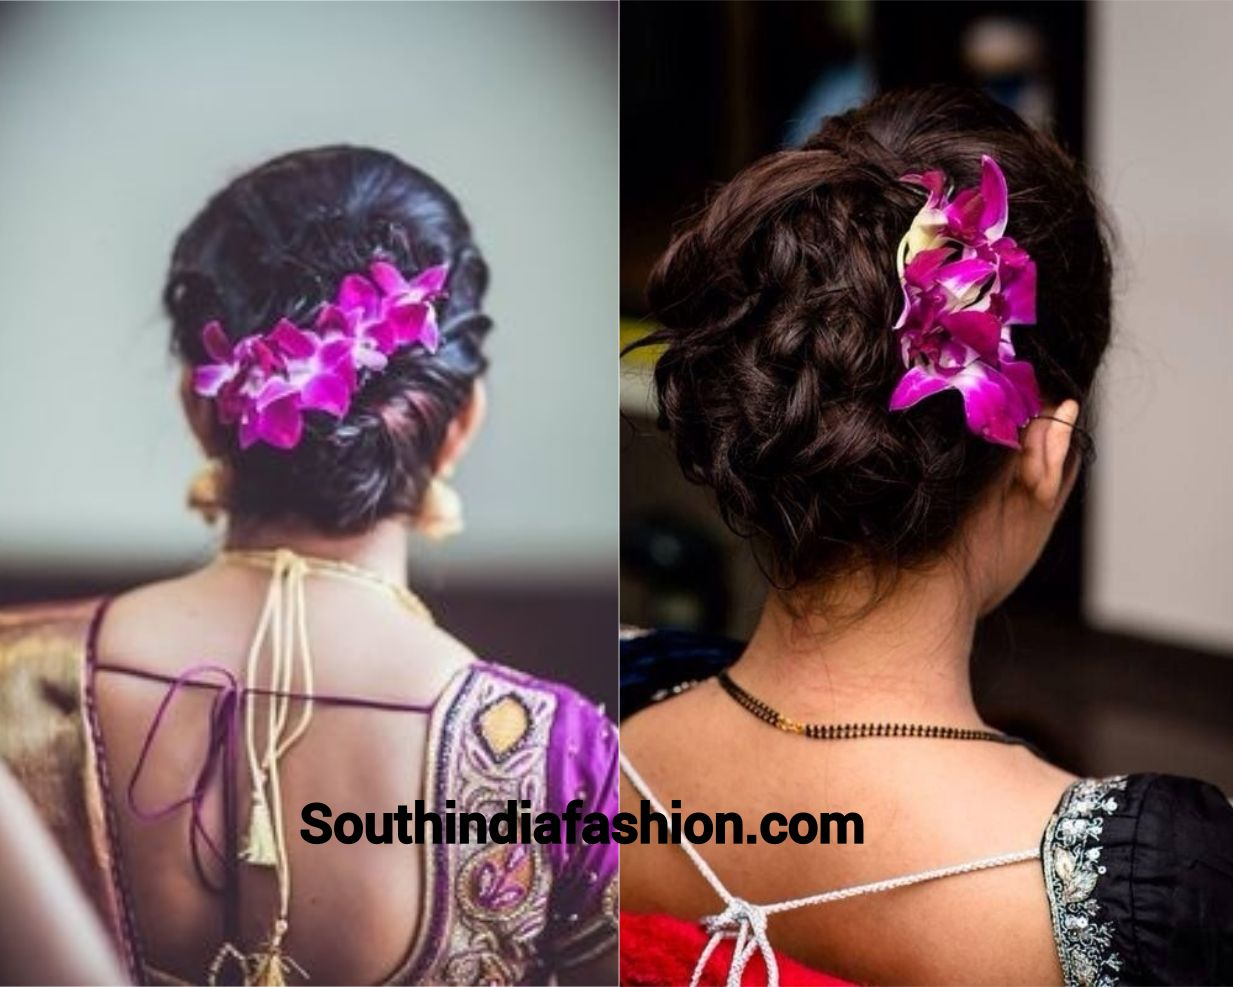 Indian Wedding Bun Hairstyle With Flowers And Gajra Bridal Hair Buns Bun Hairstyles Hair Styles